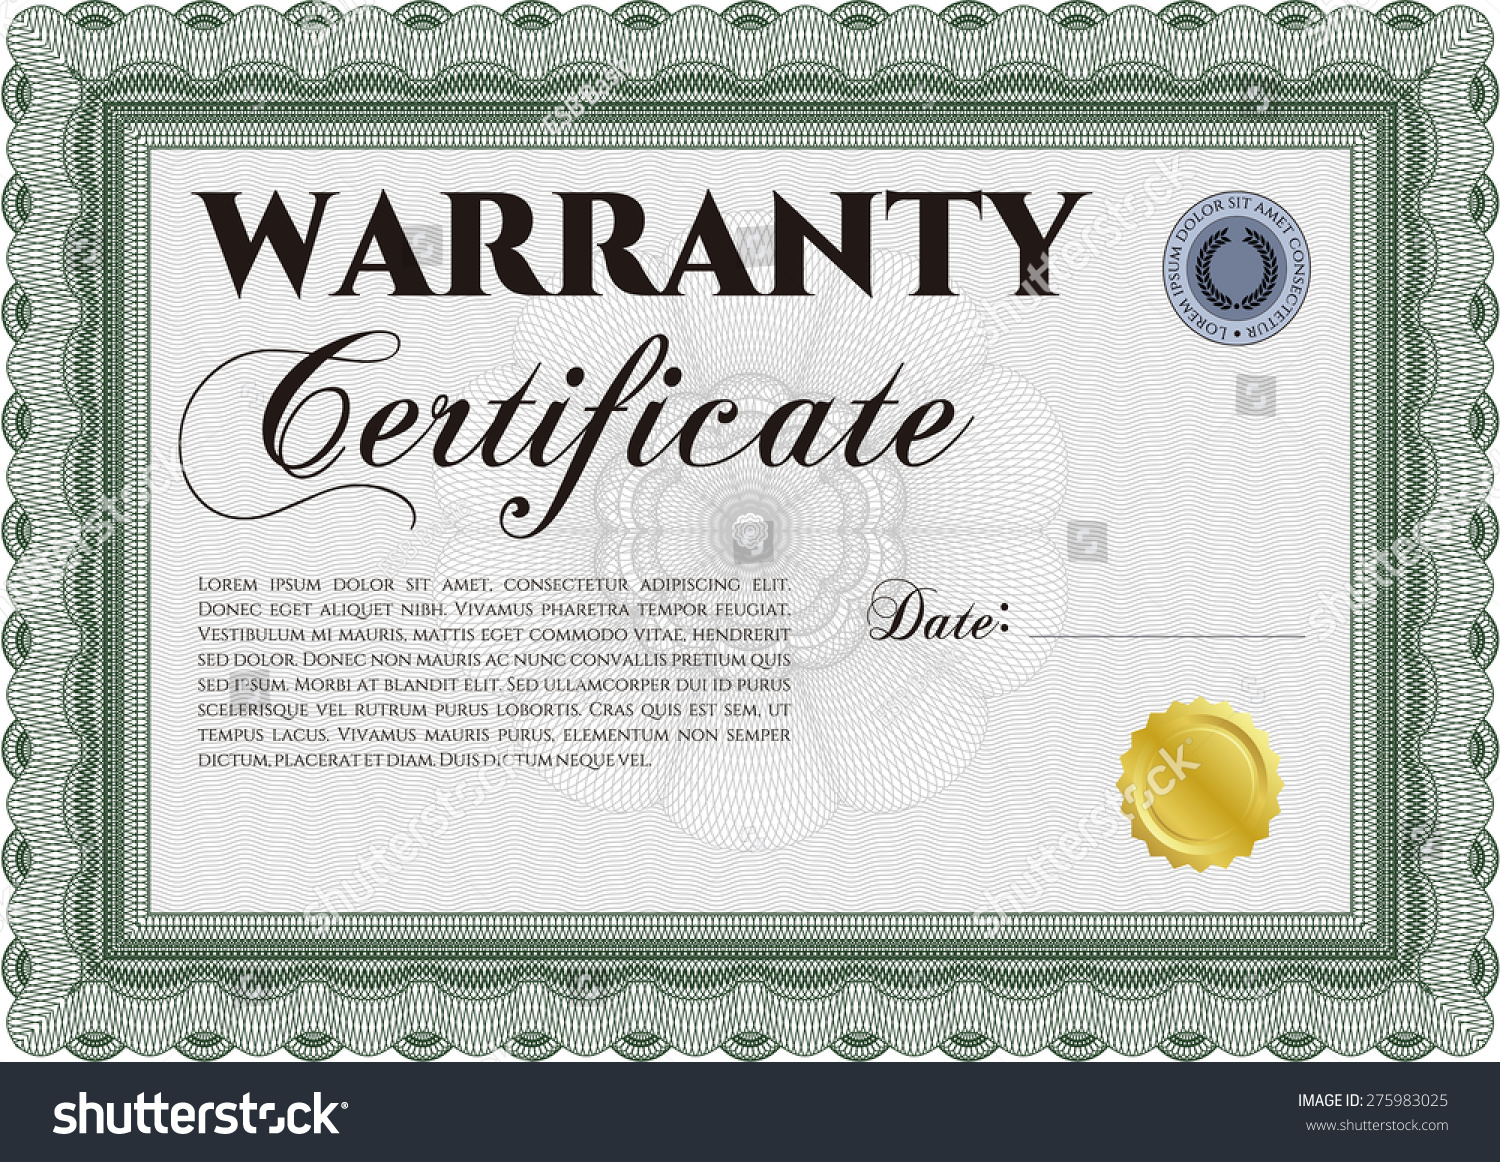 Sample Warranty Certificate Template Perfect Style Stock